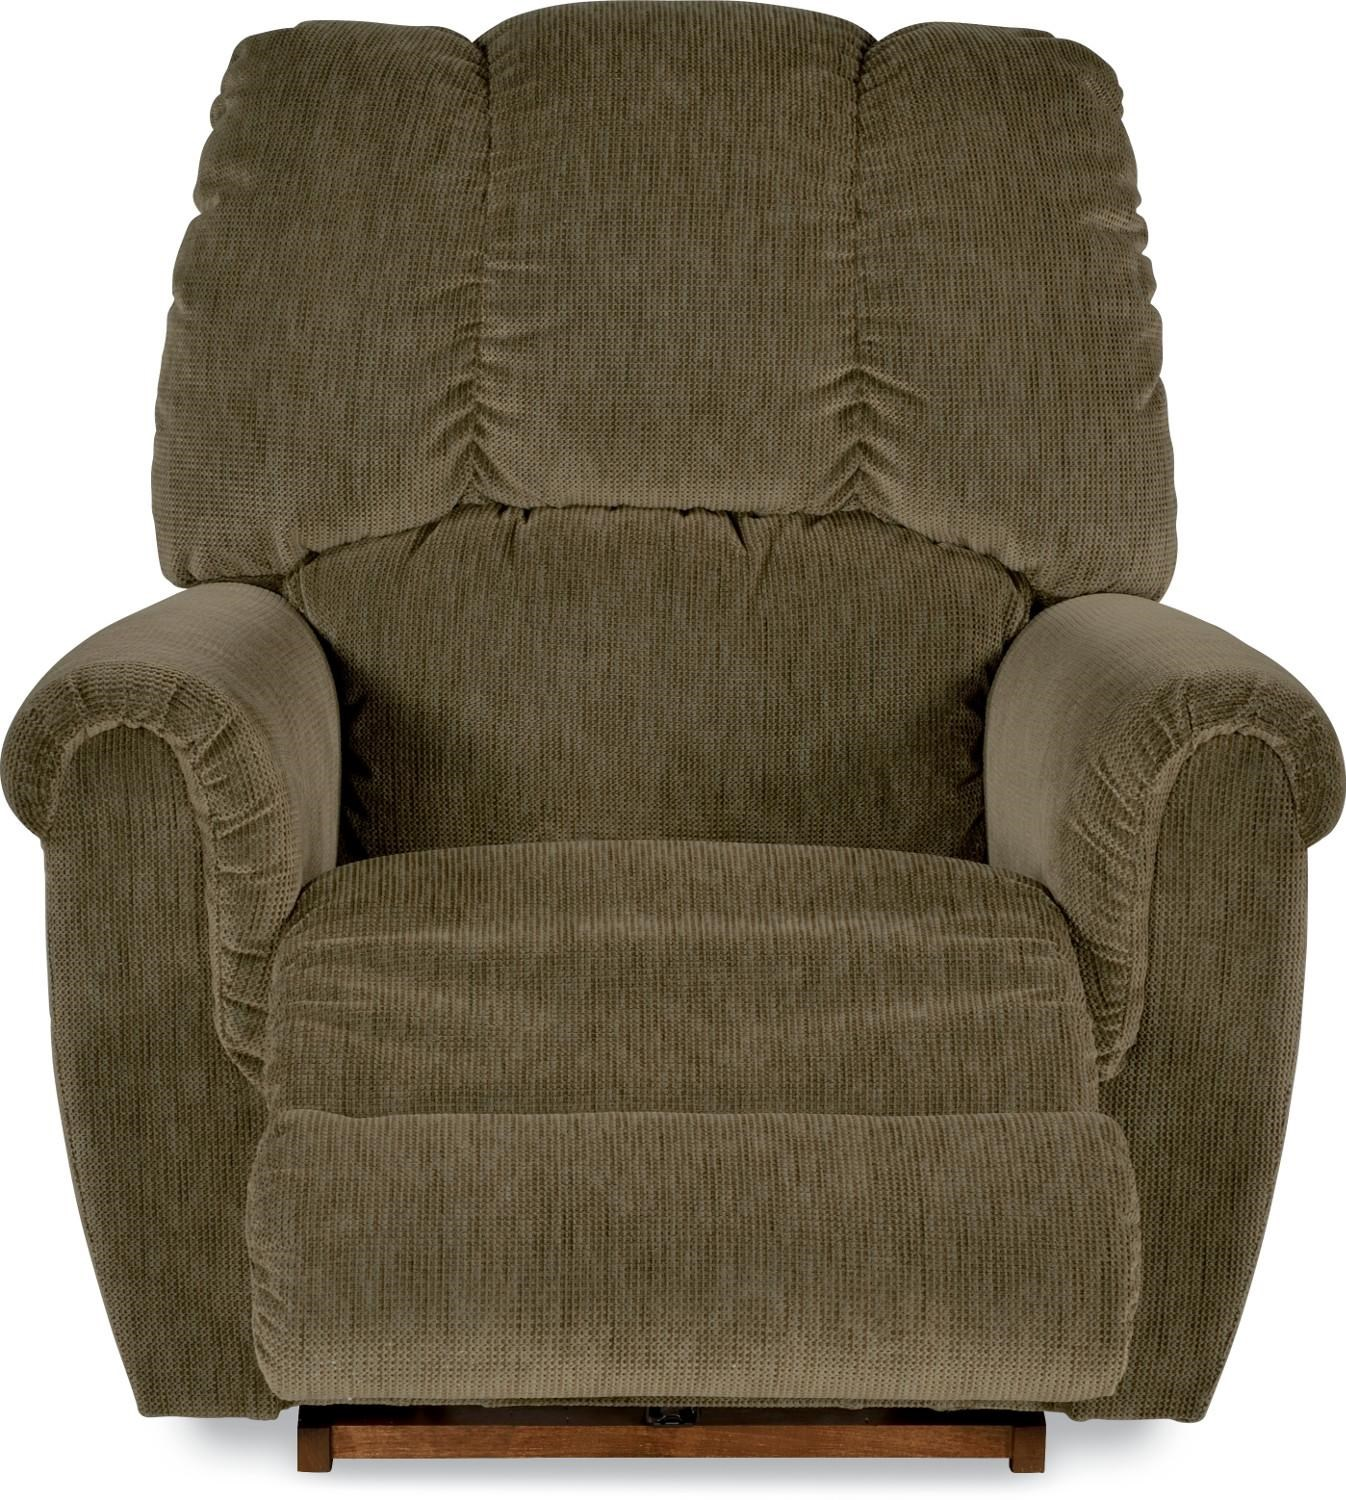 La-Z-Boy Fabric Conner Thistle Rocker Recliner - Great American Home Store - Three Way Recliners  sc 1 st  Great American Home Store & La-Z-Boy Fabric Conner Thistle Rocker Recliner - Great American ... islam-shia.org